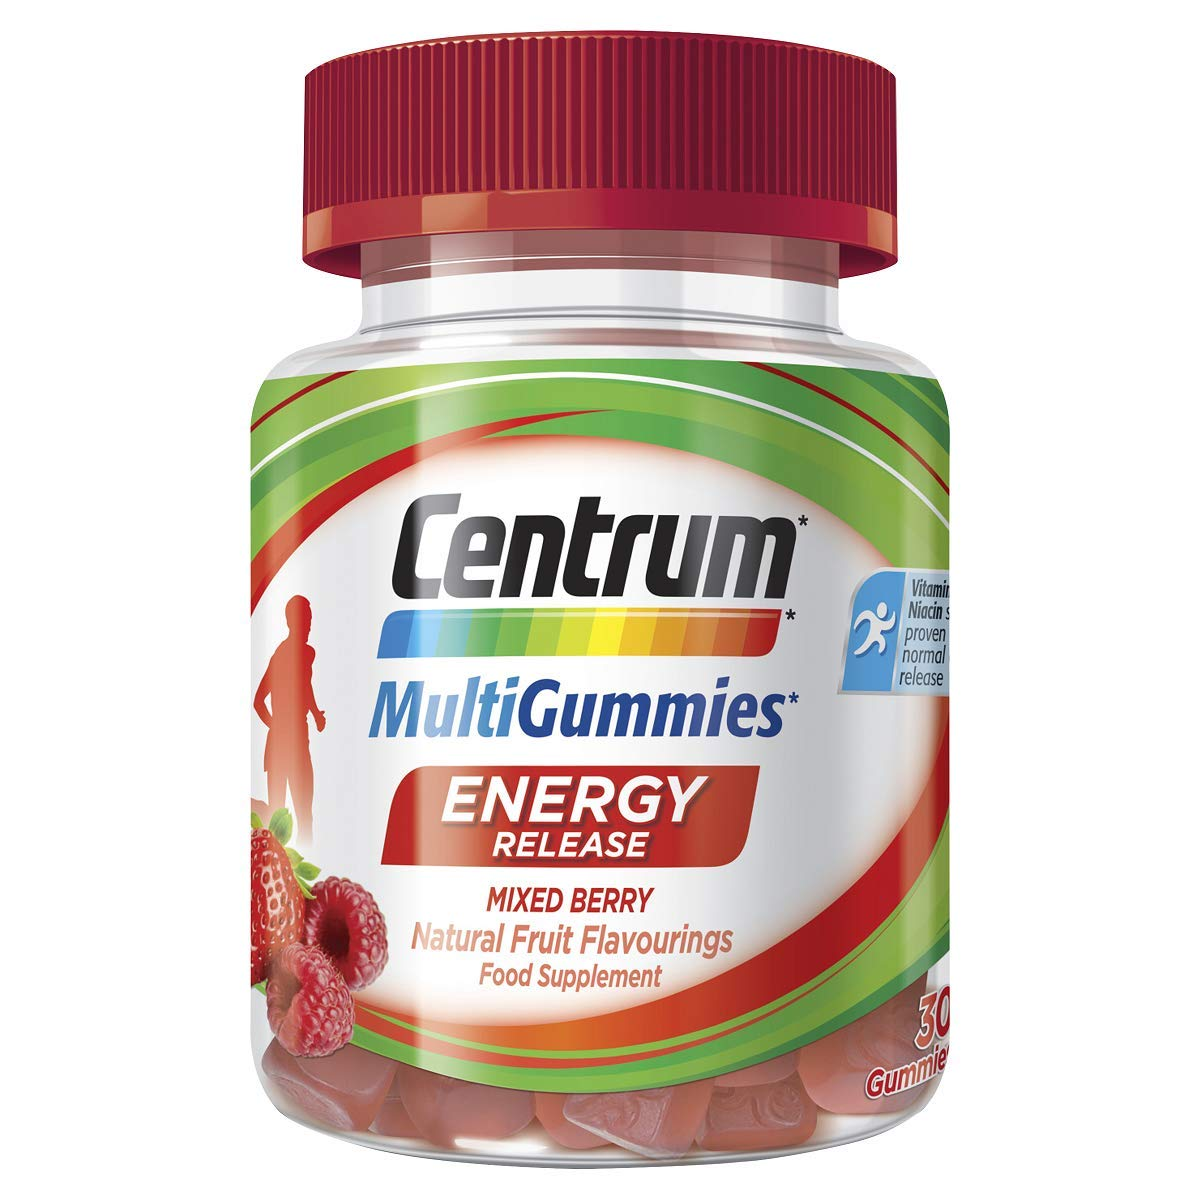 Centrum Multigummies Energy Release 30 Gummies, 104 g